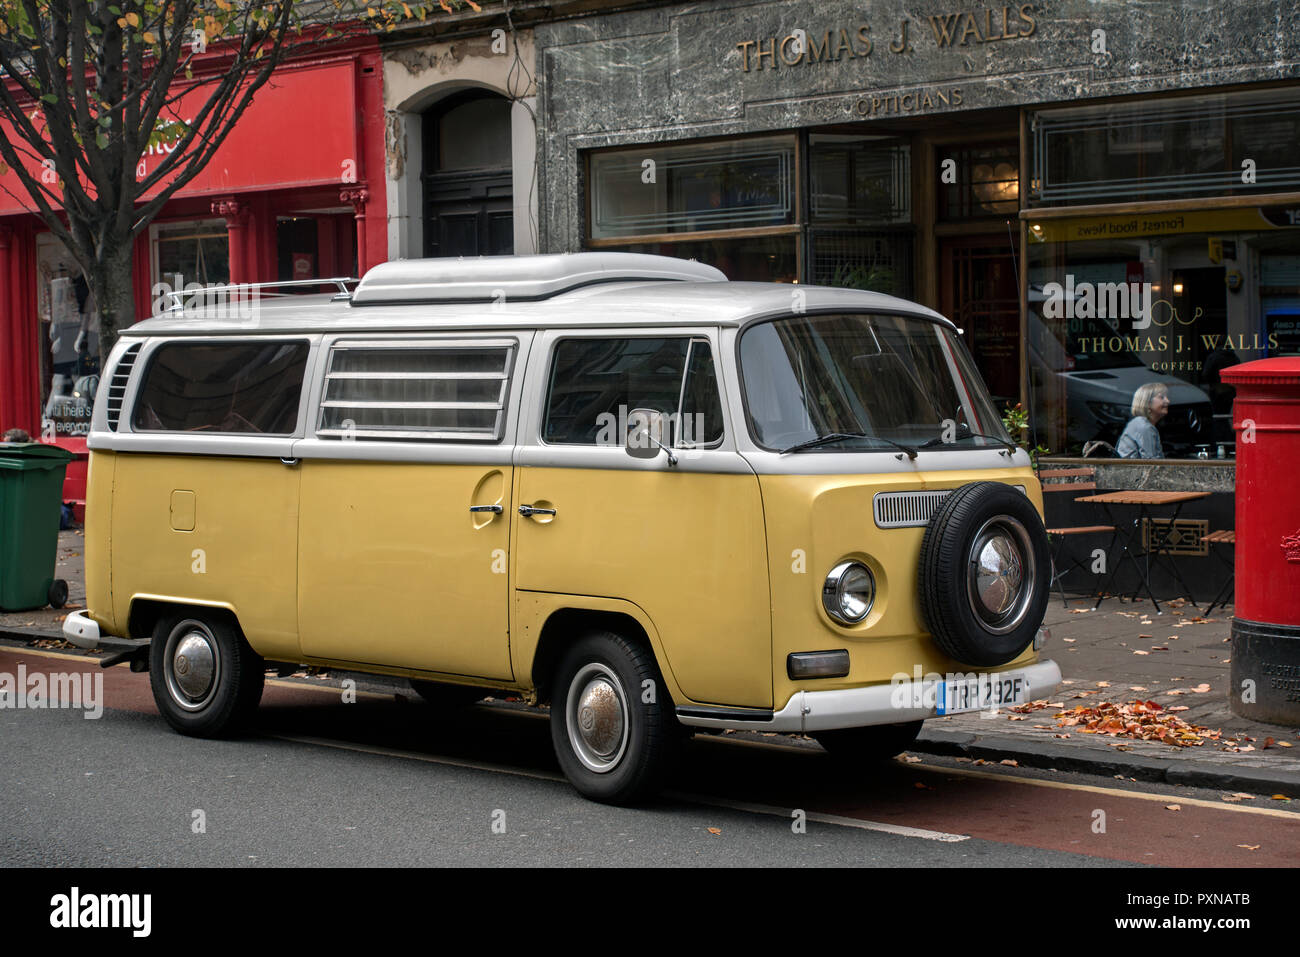 Yellow and white Volkswagen Campervan parked in Edinburgh's Old Town. - Stock Image